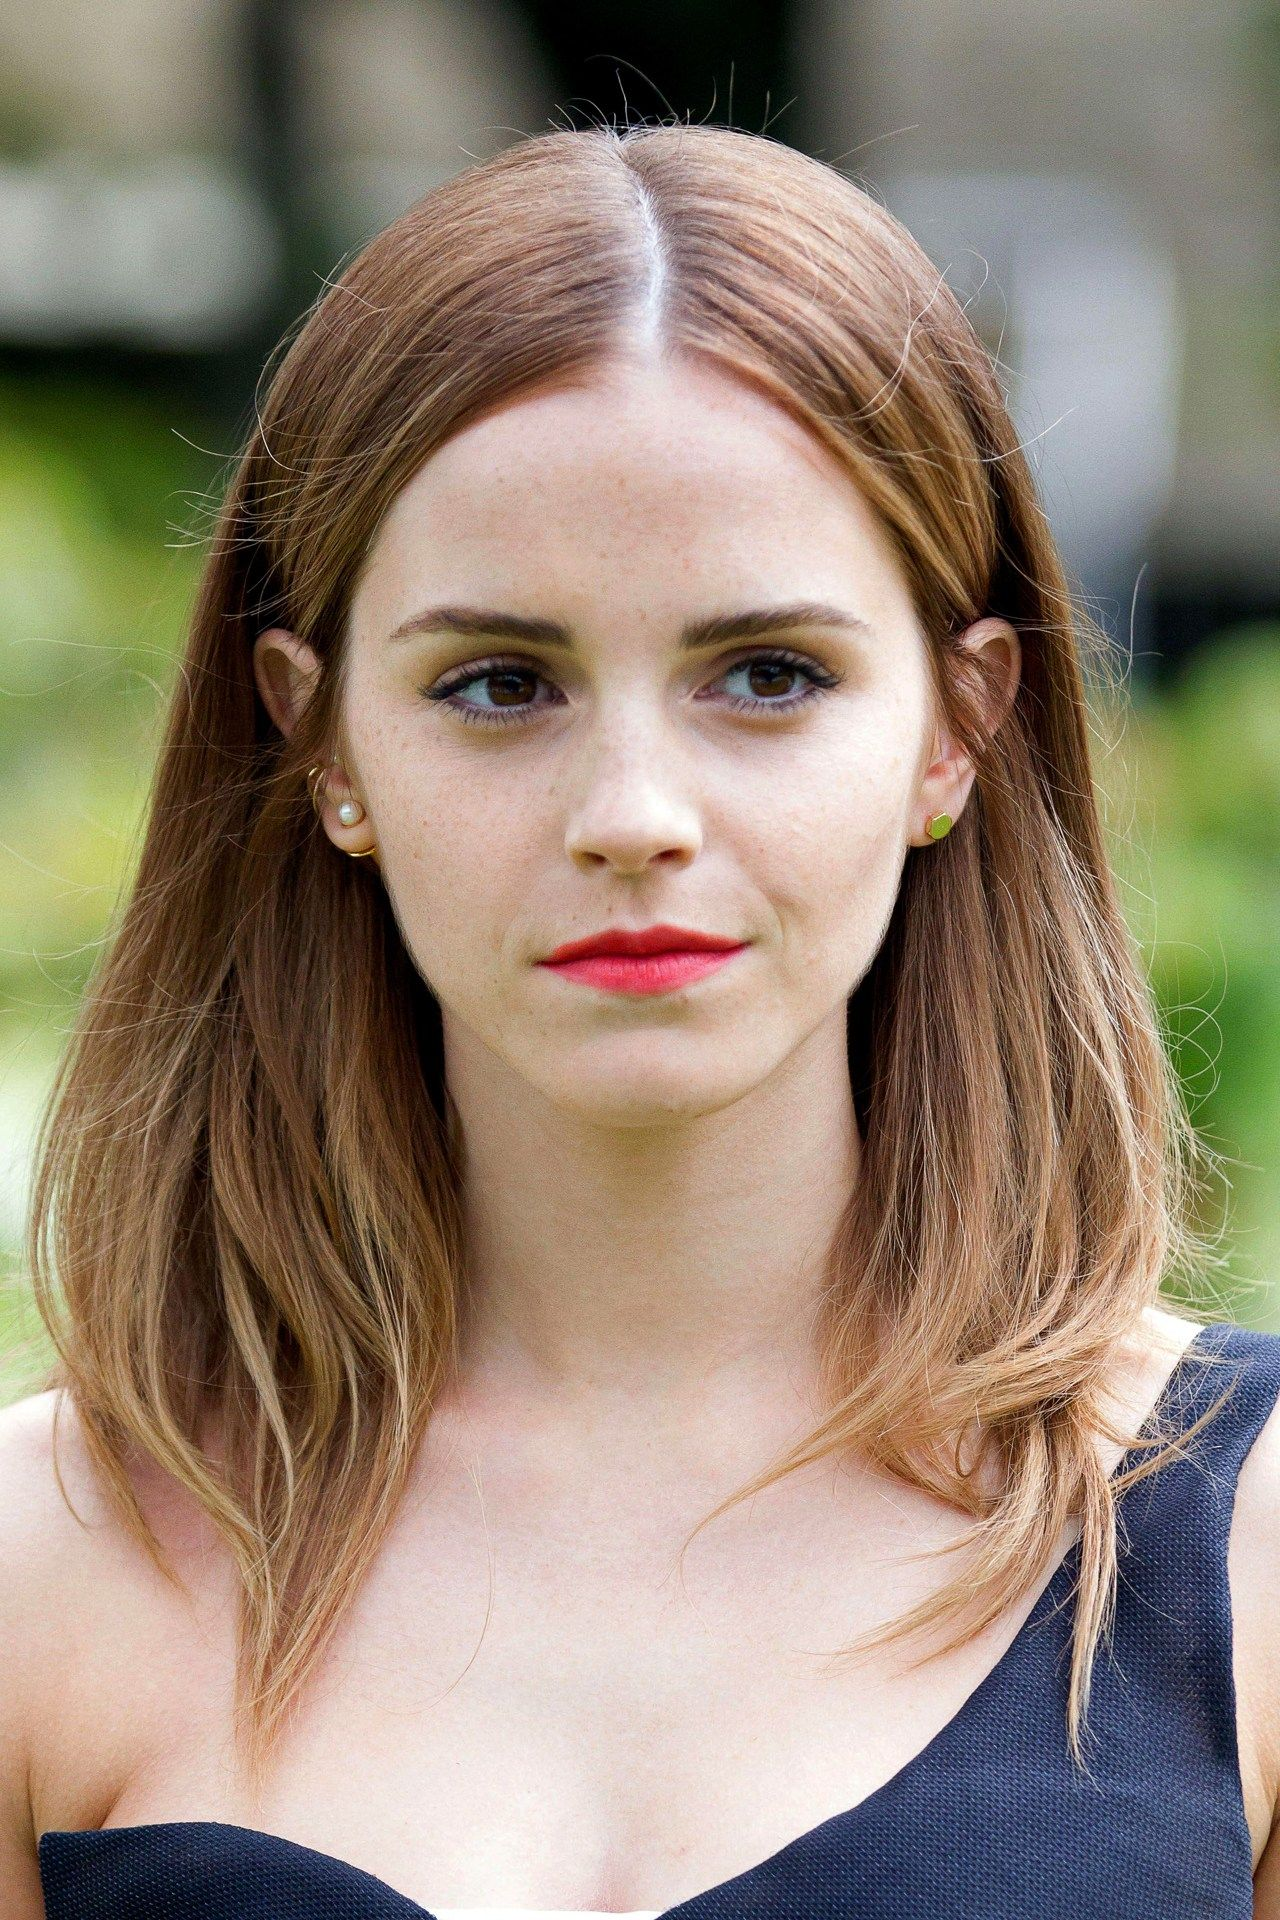 emma watson Having grown up in the spotlight, Emma Watson has had her style - and  hairstyles